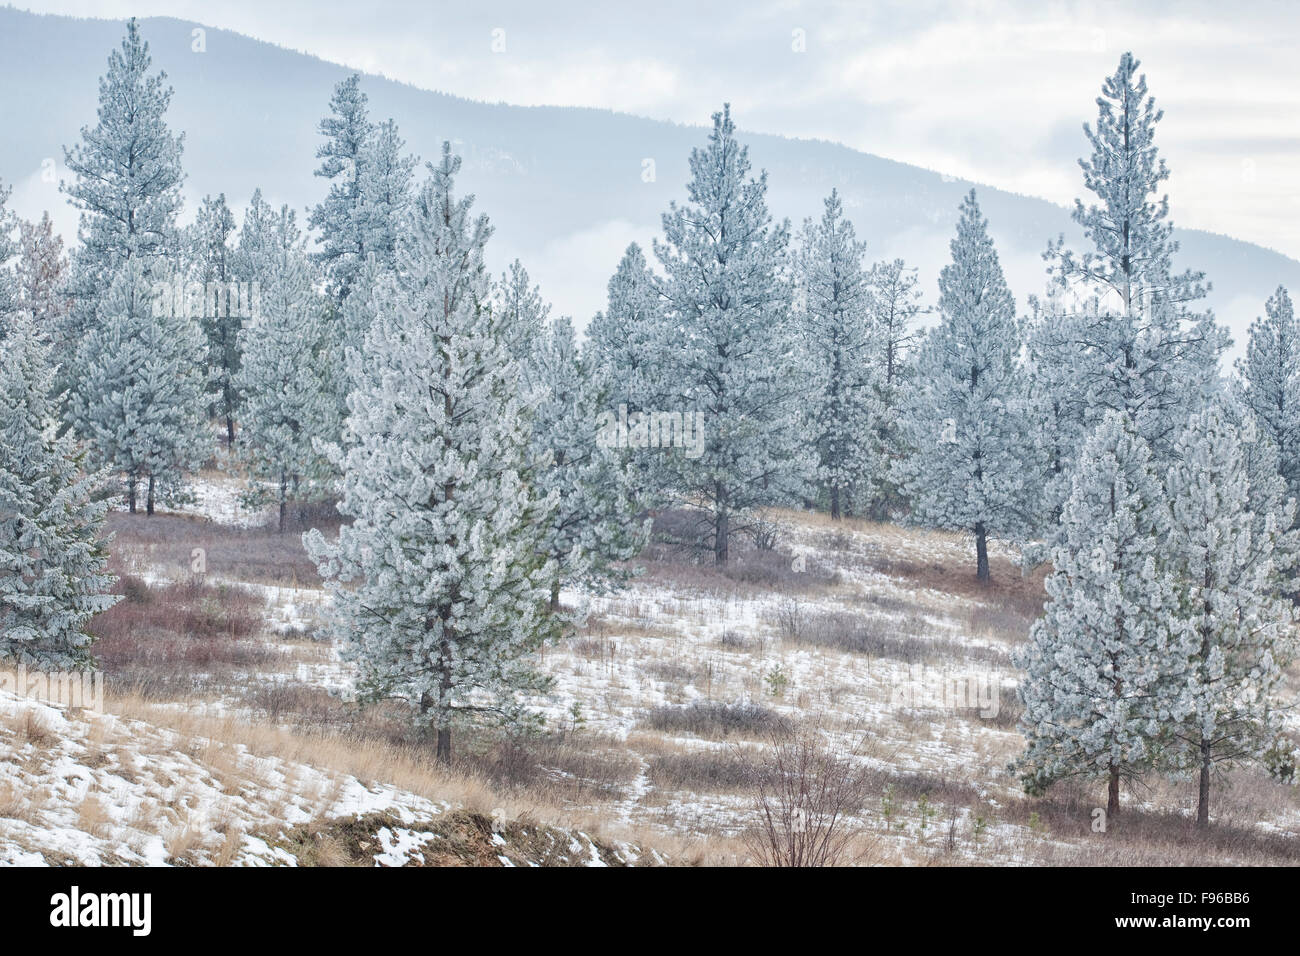 Frosty conifers, Kalamalka Lake Provincial Park, British Columbia, Canada - Stock Image